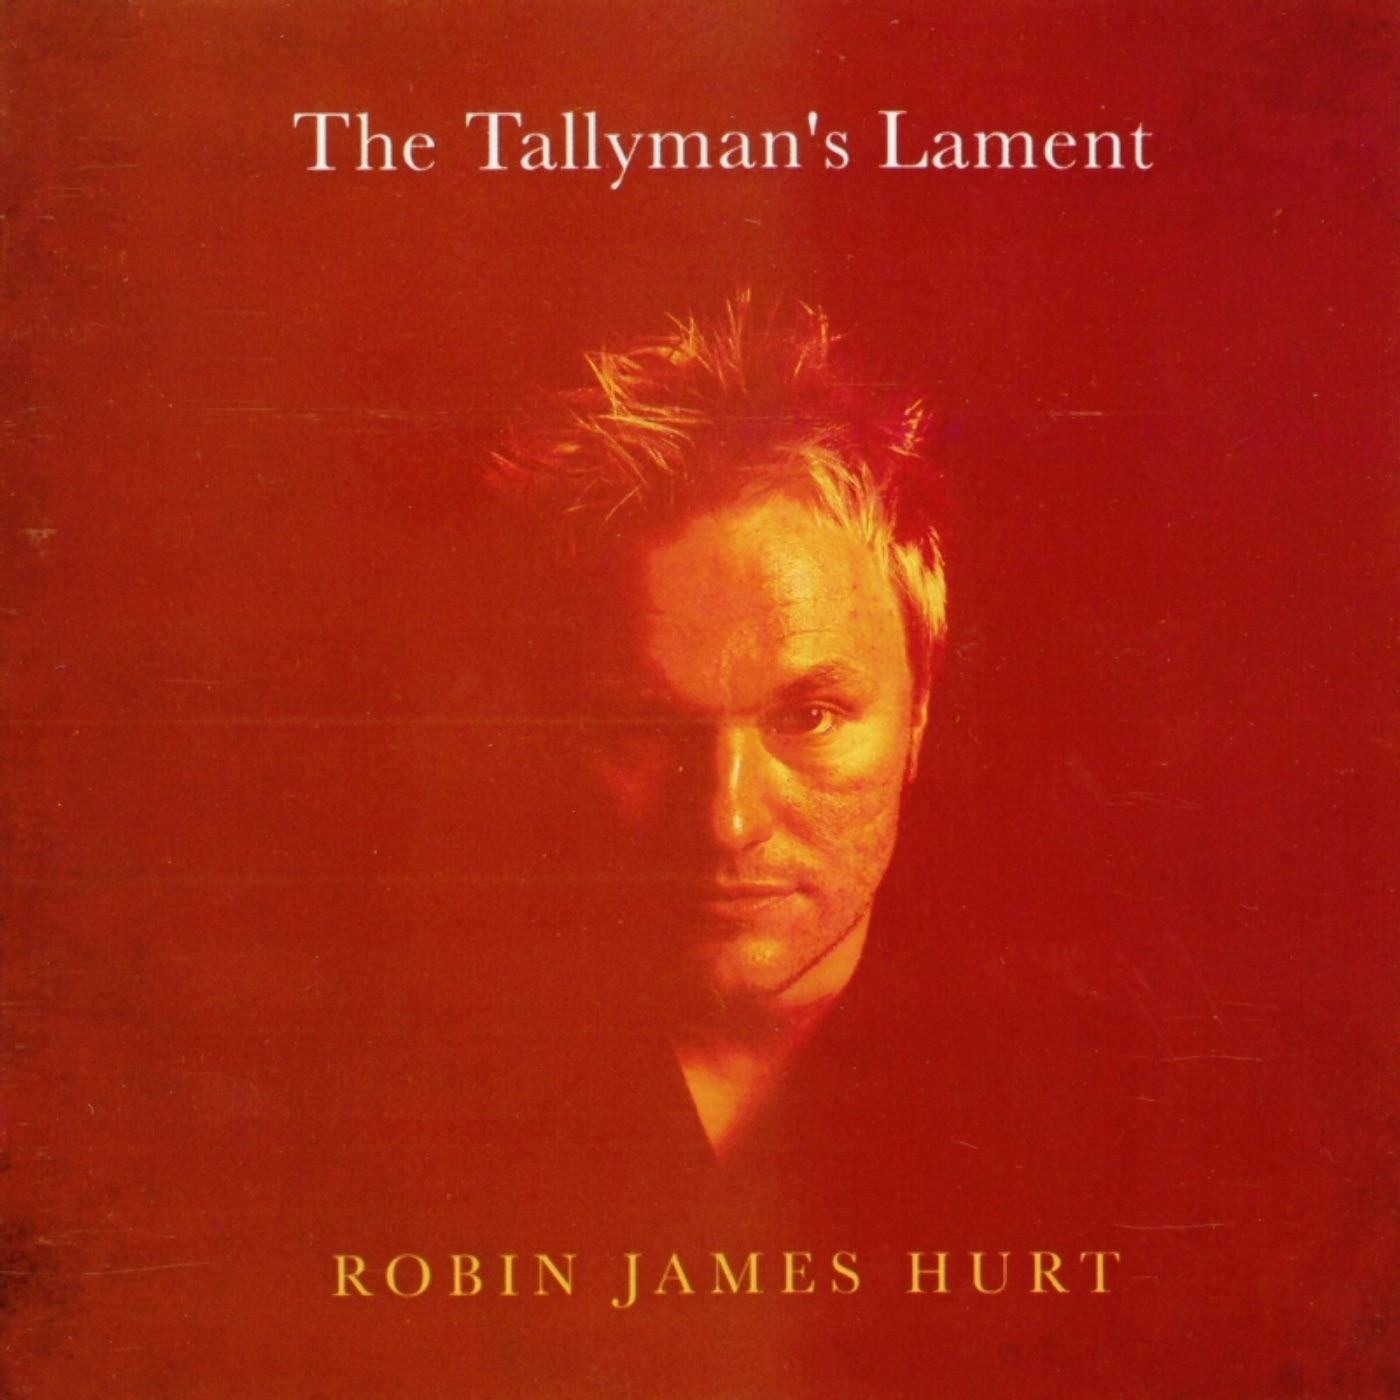 The Tallyman's Lament